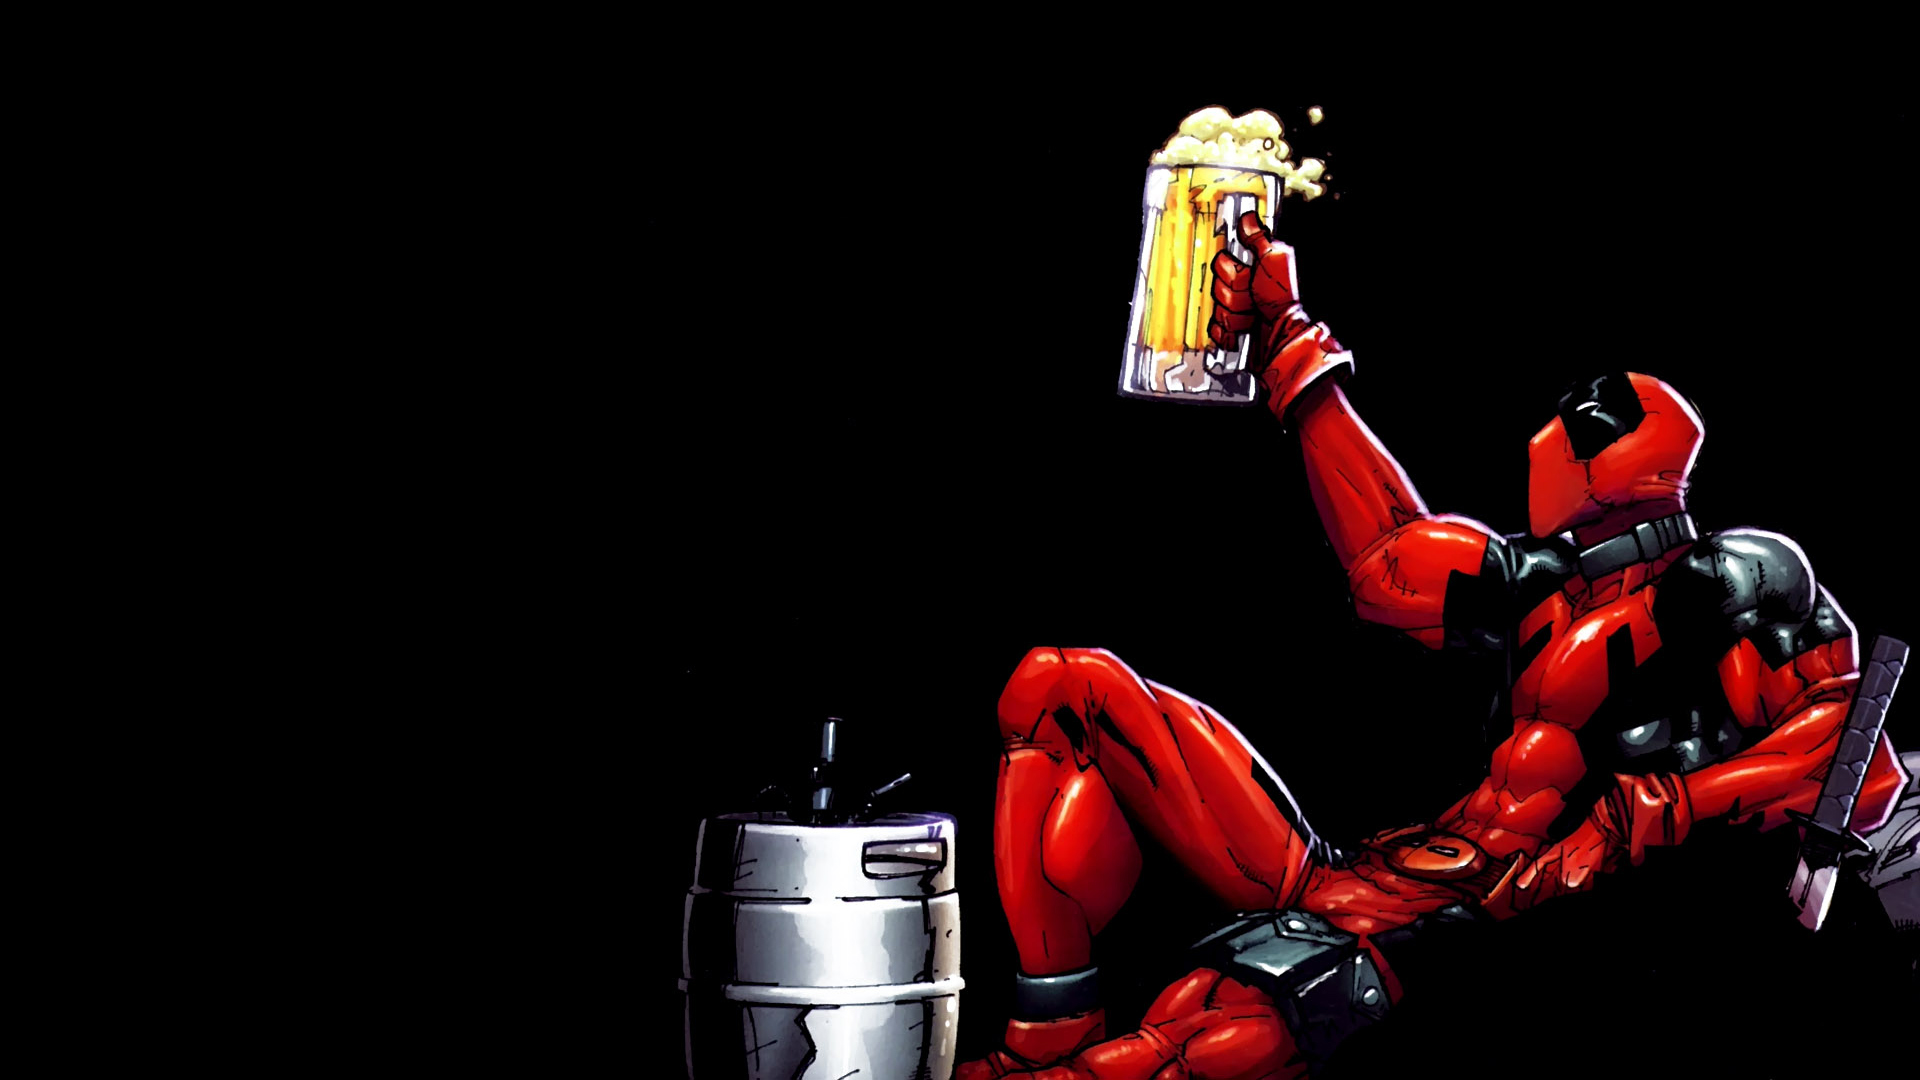 Deadpool HD Wallpapers   HD Wallpapers Backgrounds of Your 1920x1080